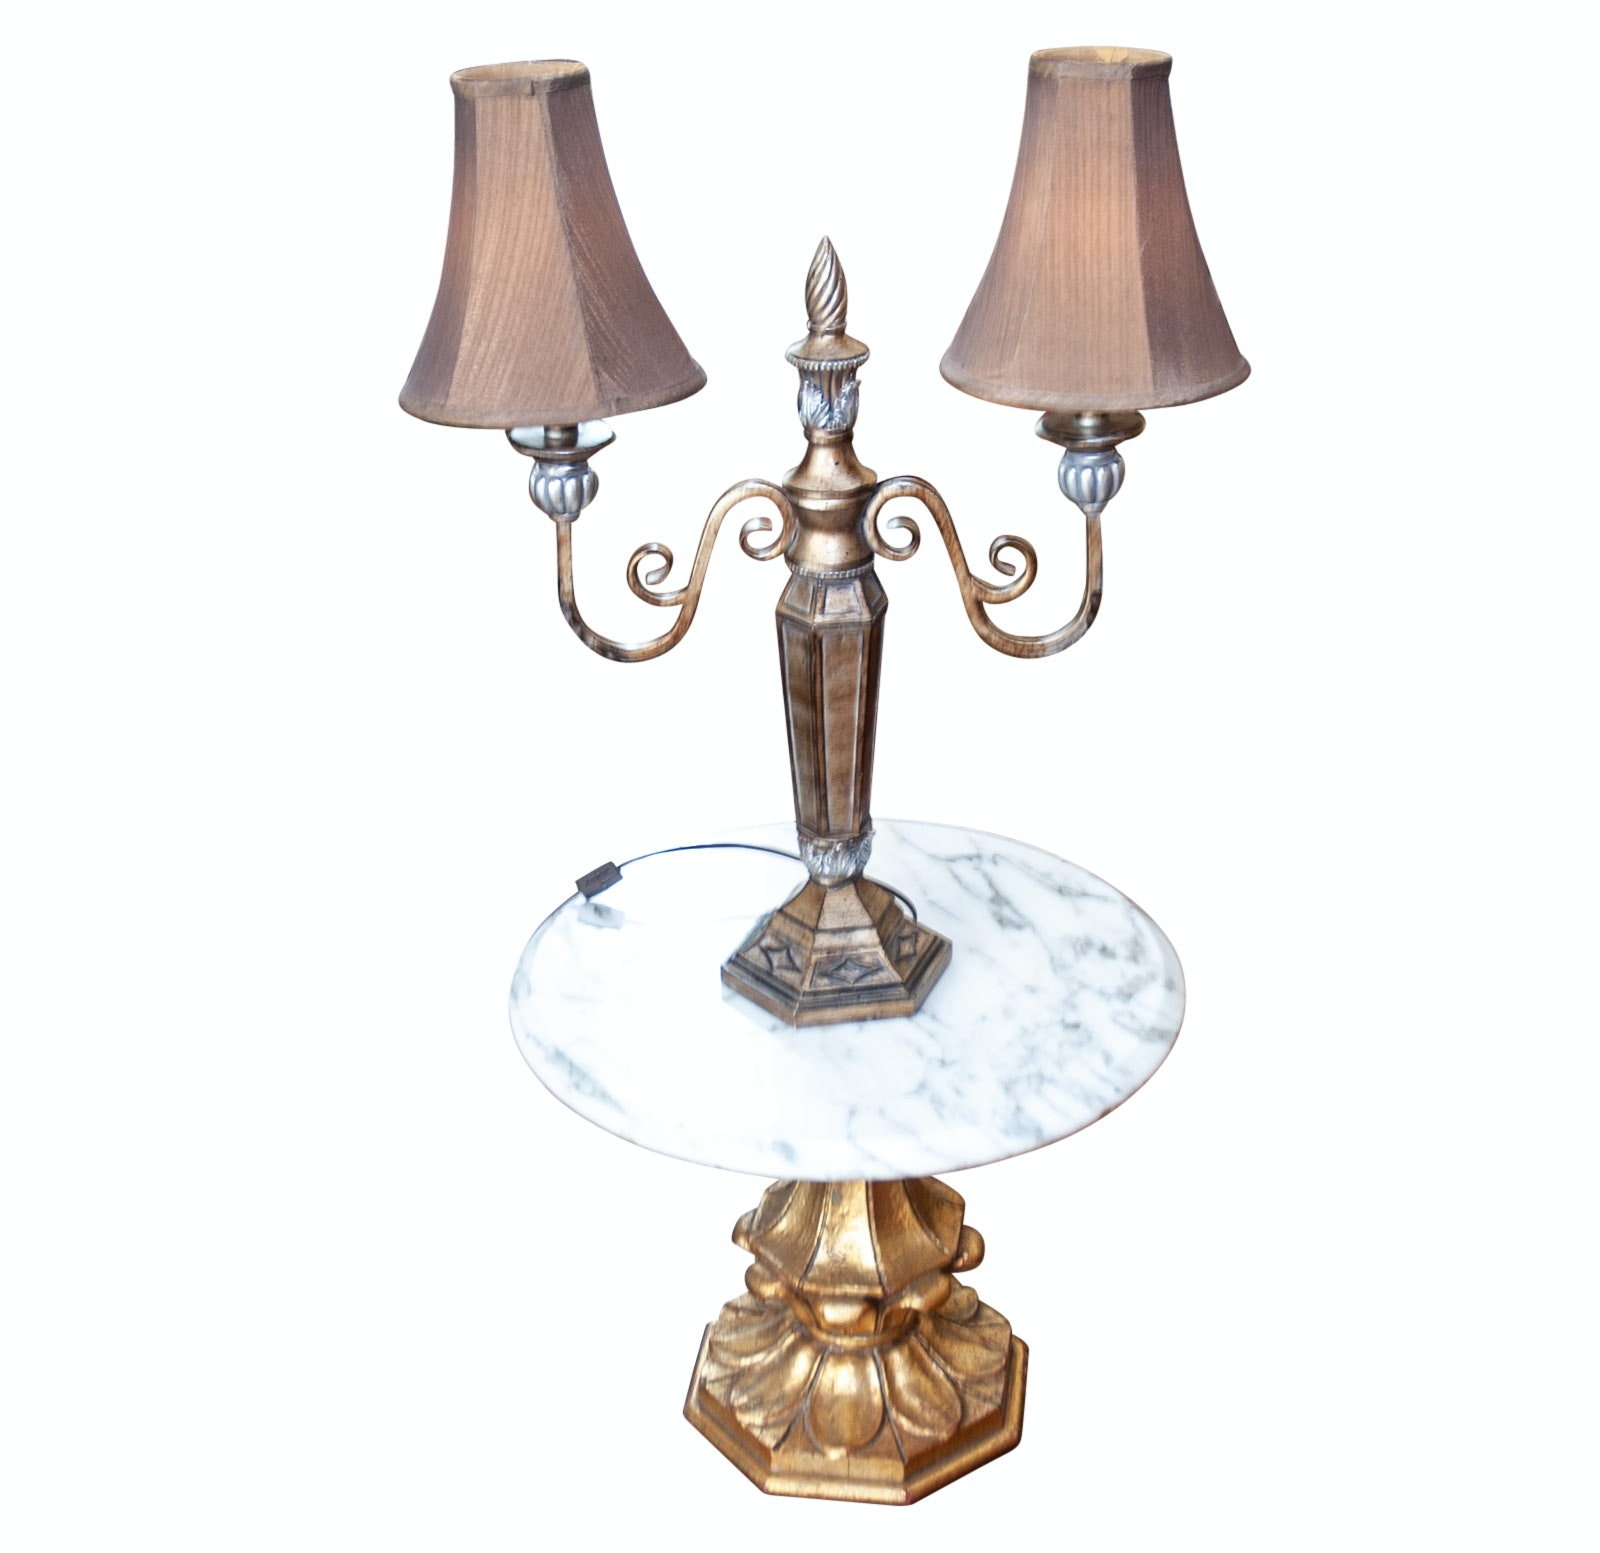 Marble Top Table and Double Socket Lamp with Shades